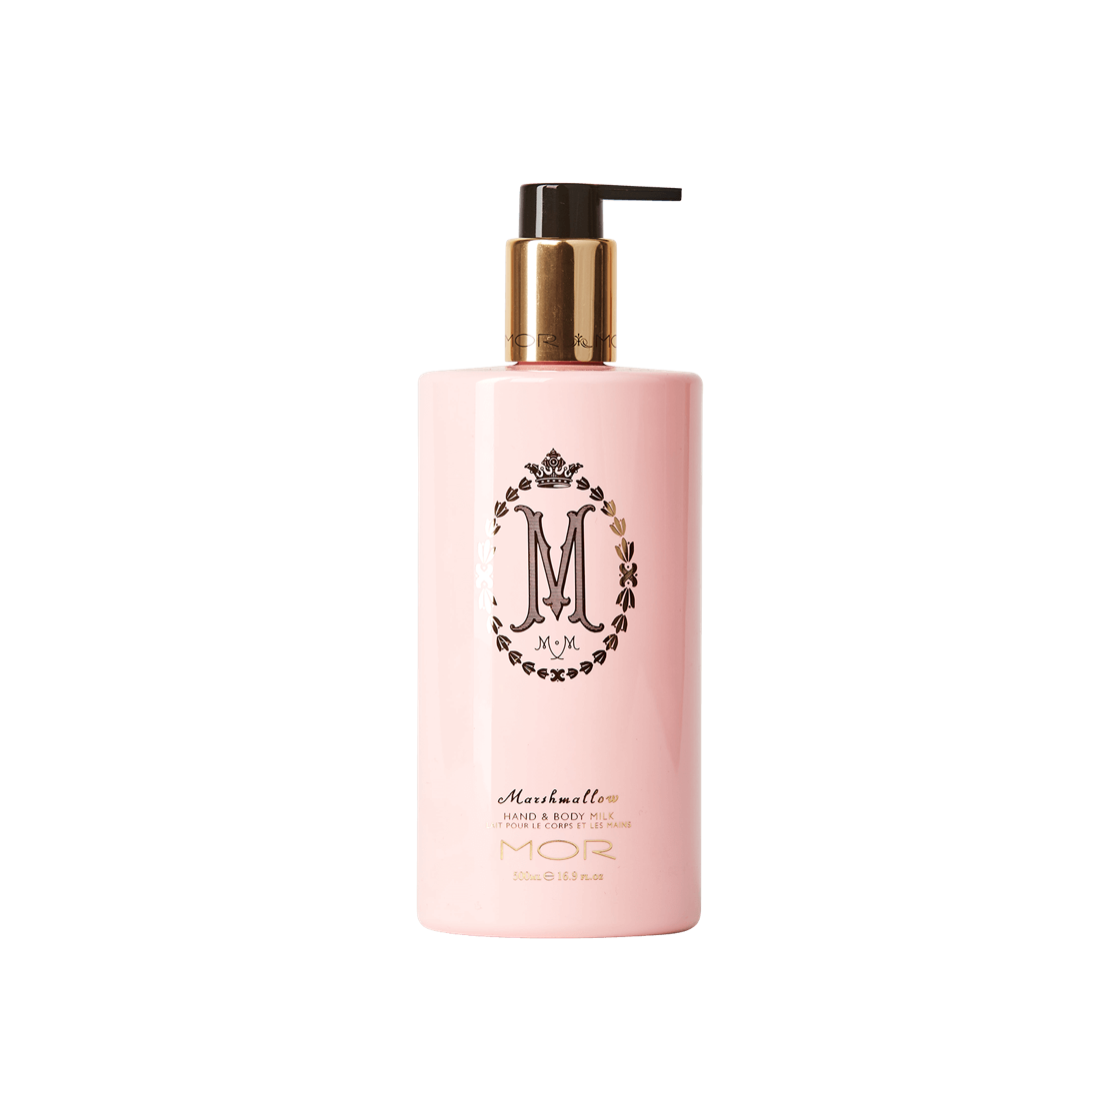 MARSHMALLOW HAND & BODY MILK